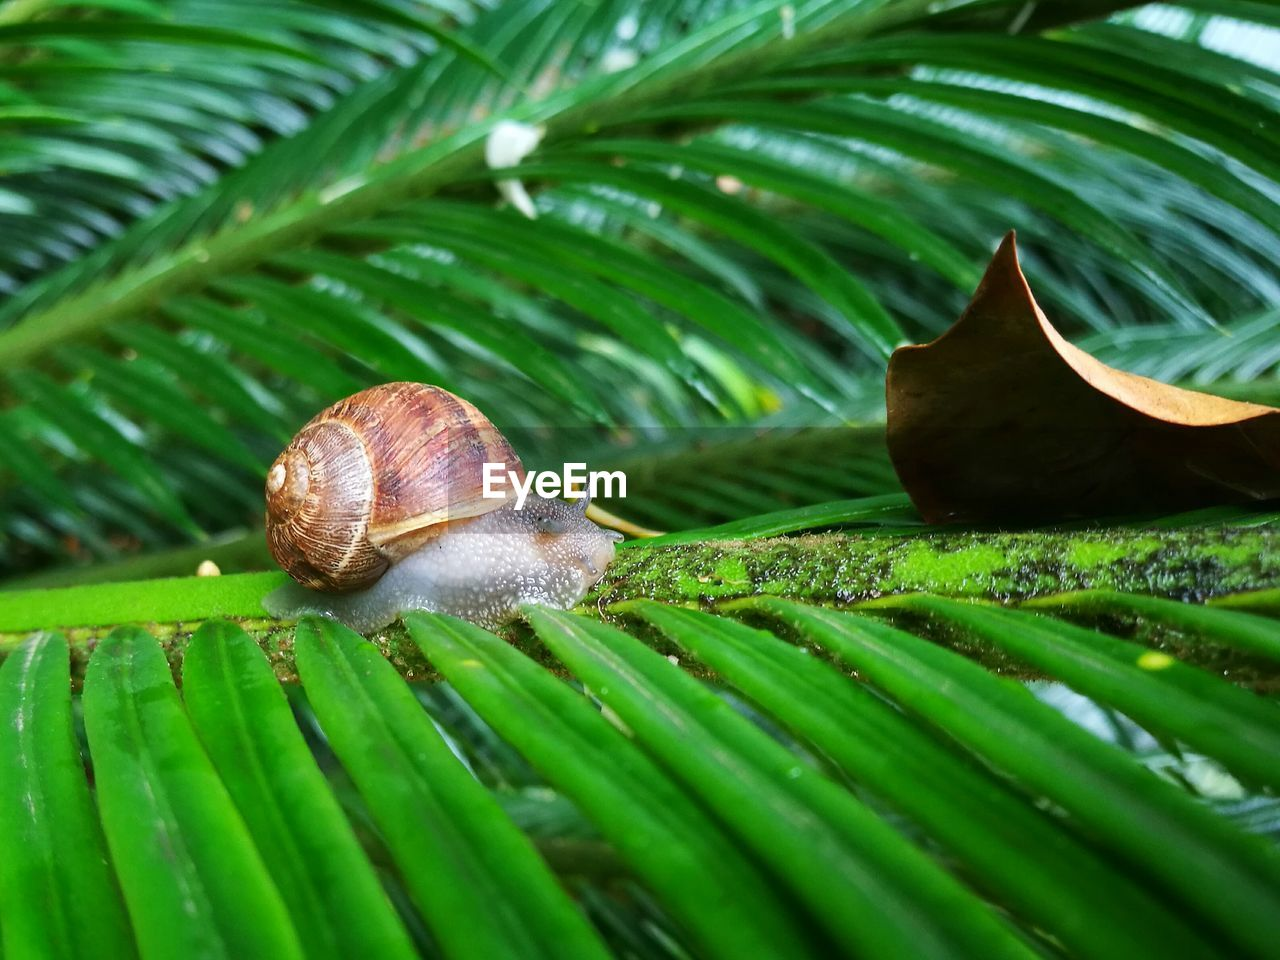 mollusk, gastropod, shell, green color, animal wildlife, leaf, plant part, animal, snail, animal themes, invertebrate, close-up, animal shell, one animal, nature, growth, plant, animals in the wild, no people, day, outdoors, leaves, palm leaf